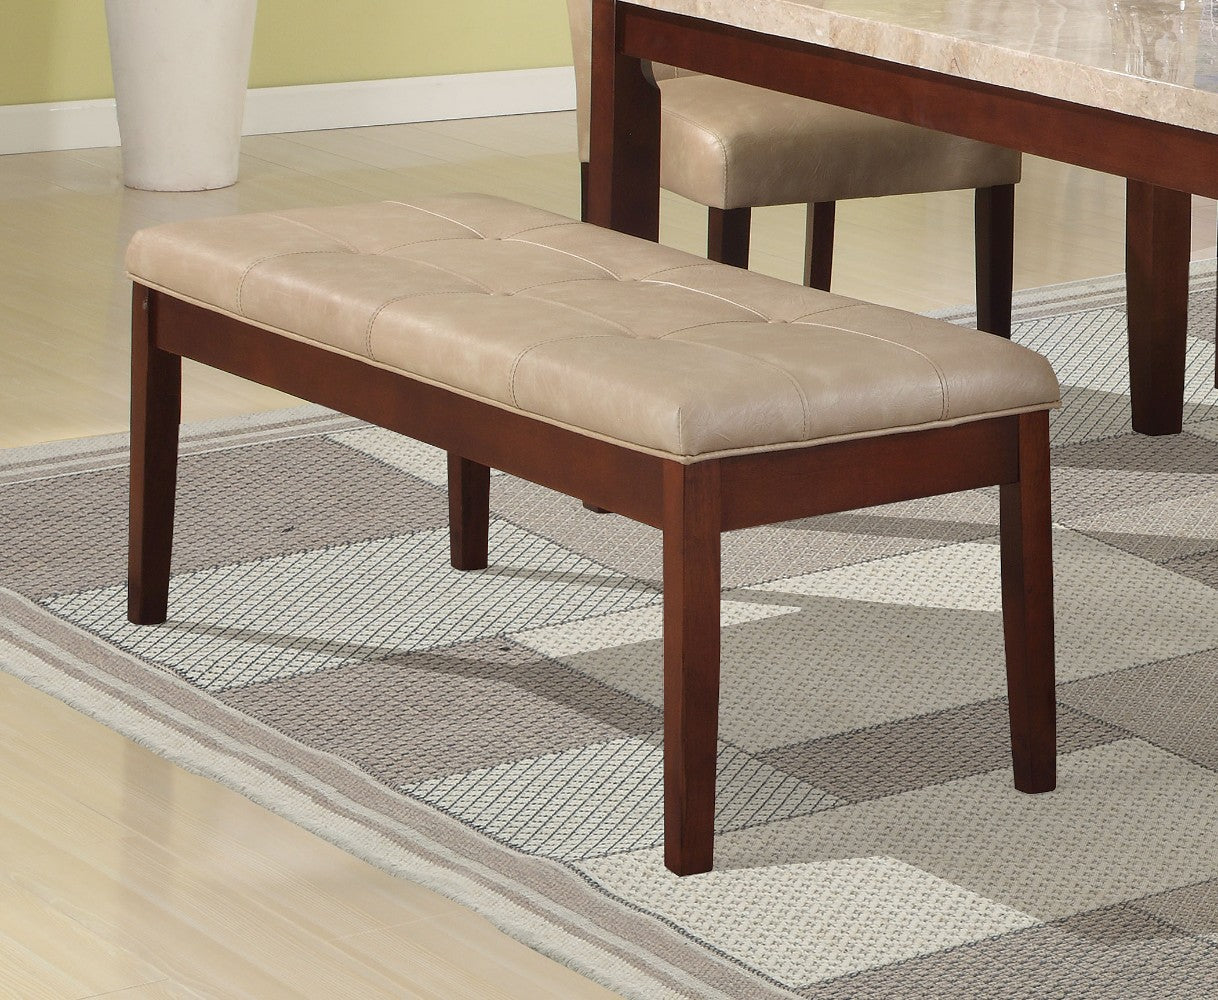 Conventional Britney Bench, Cream & Walnut Brown